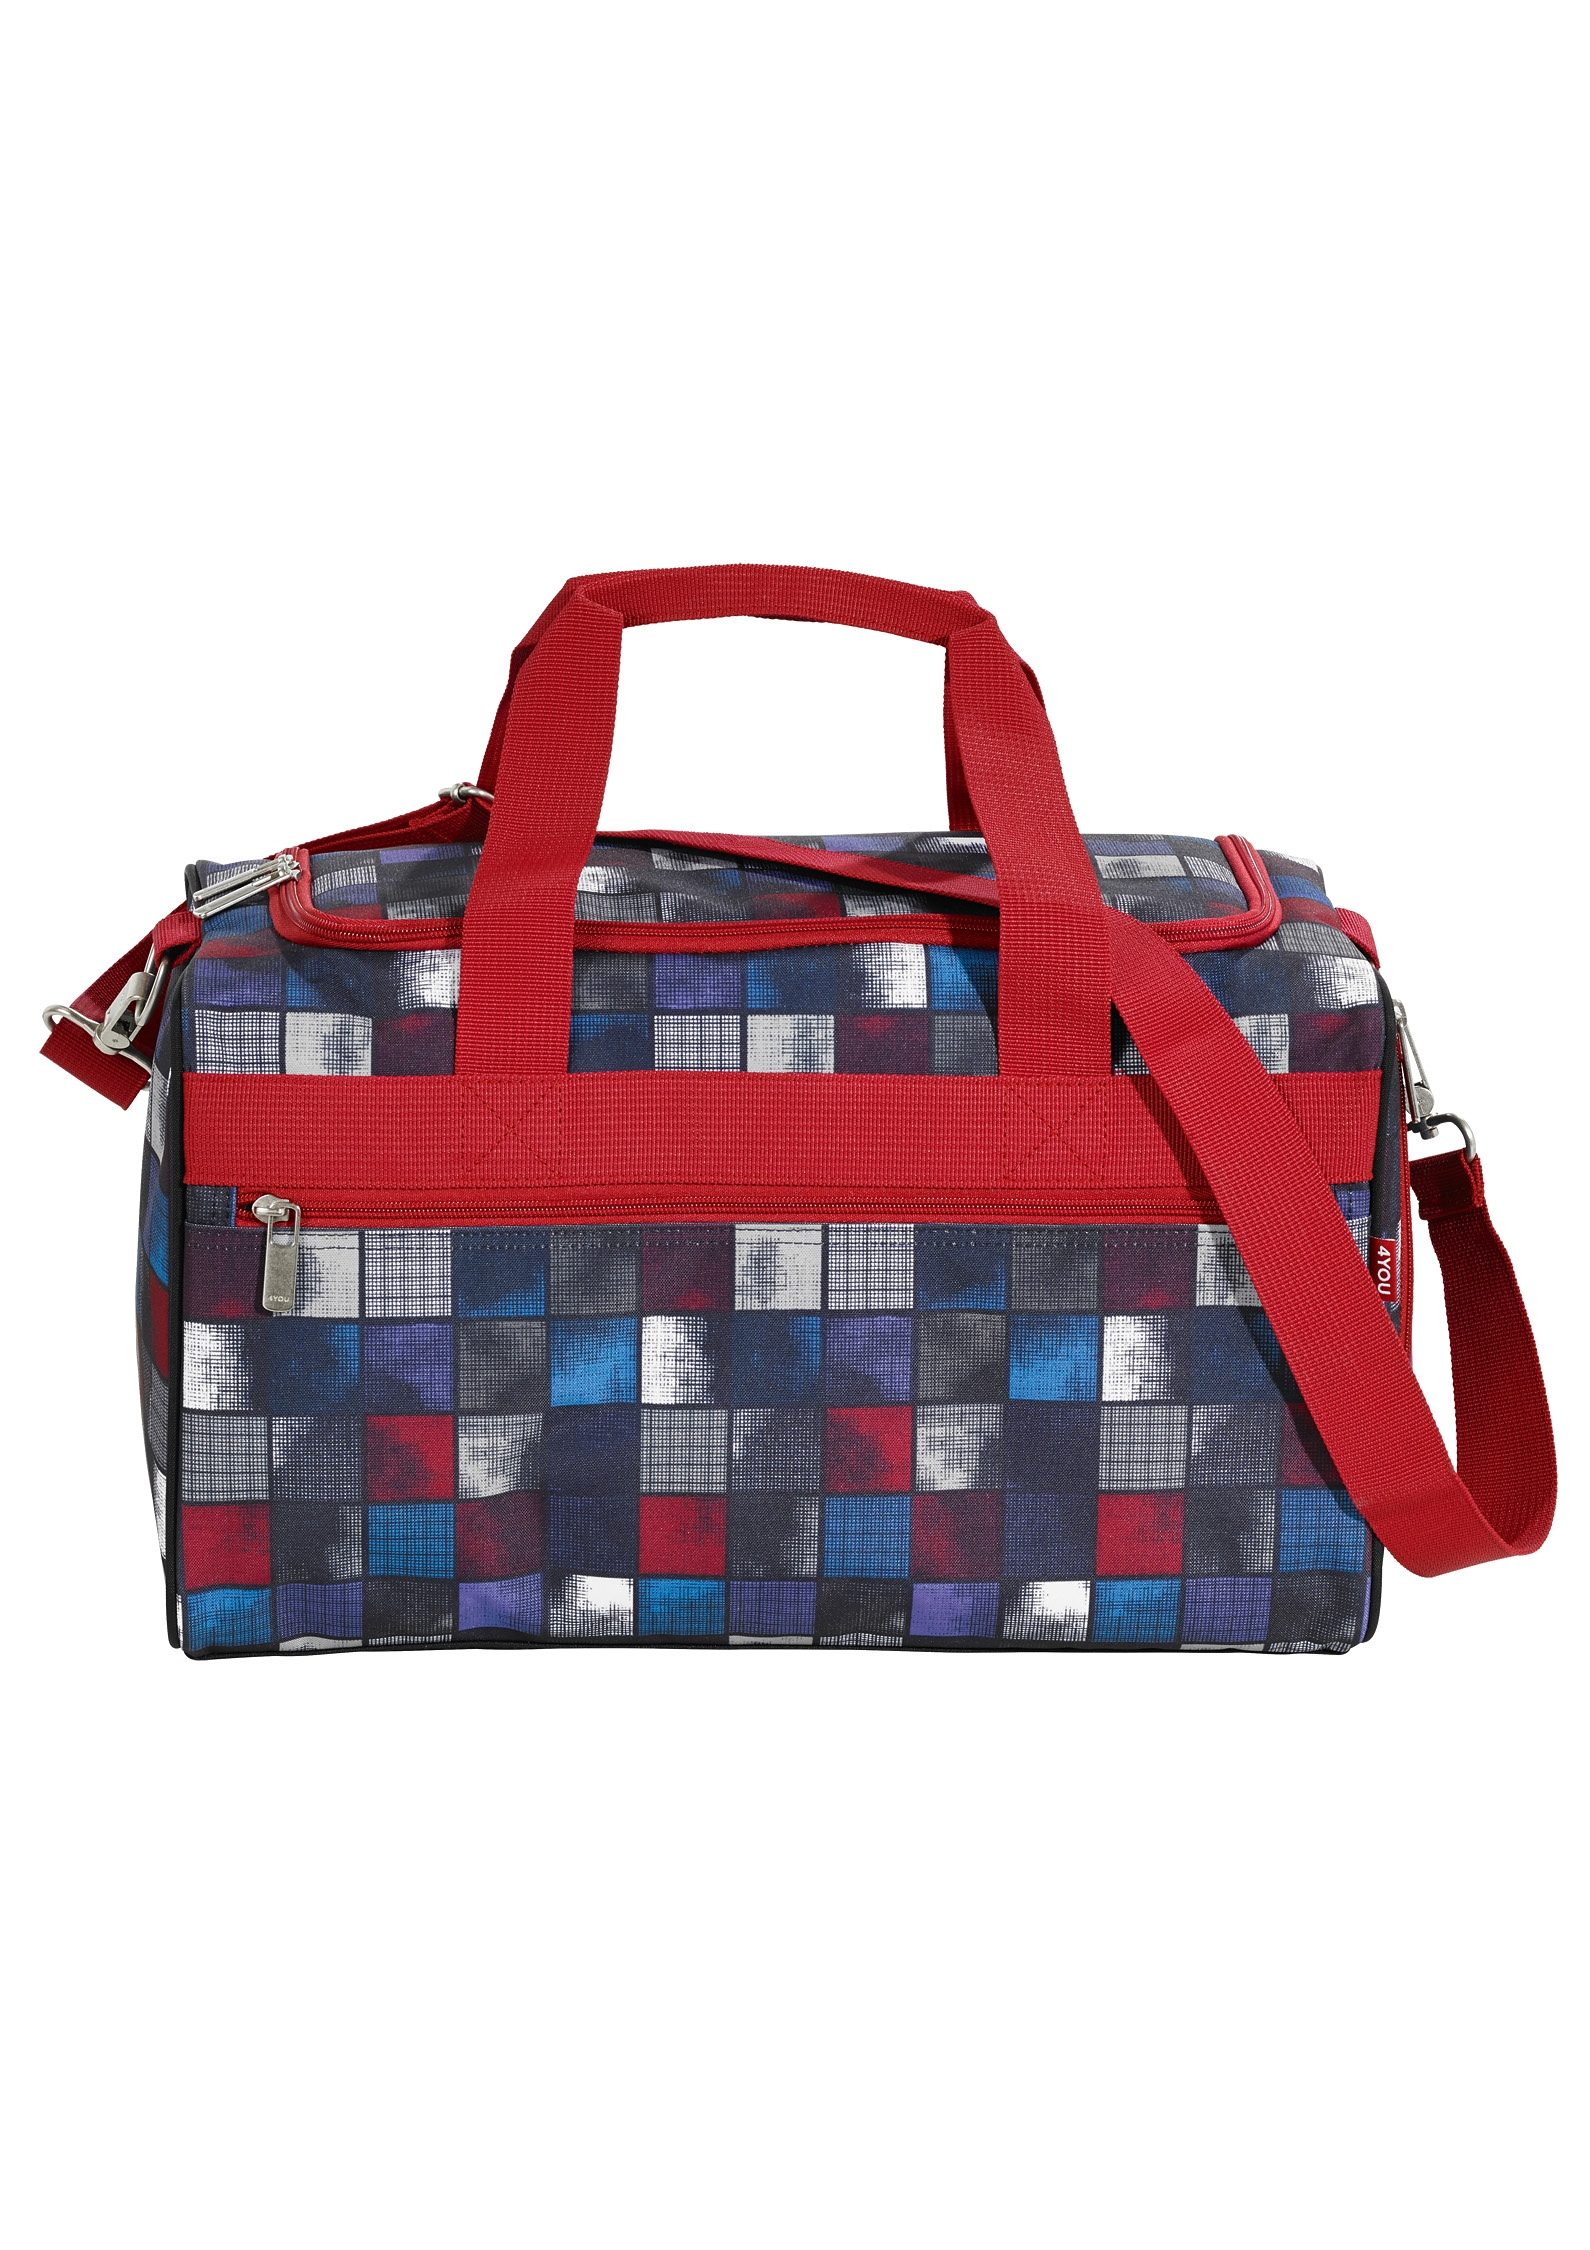 4YOU Sporttasche, Square Blue/Red, »Sportbag M«